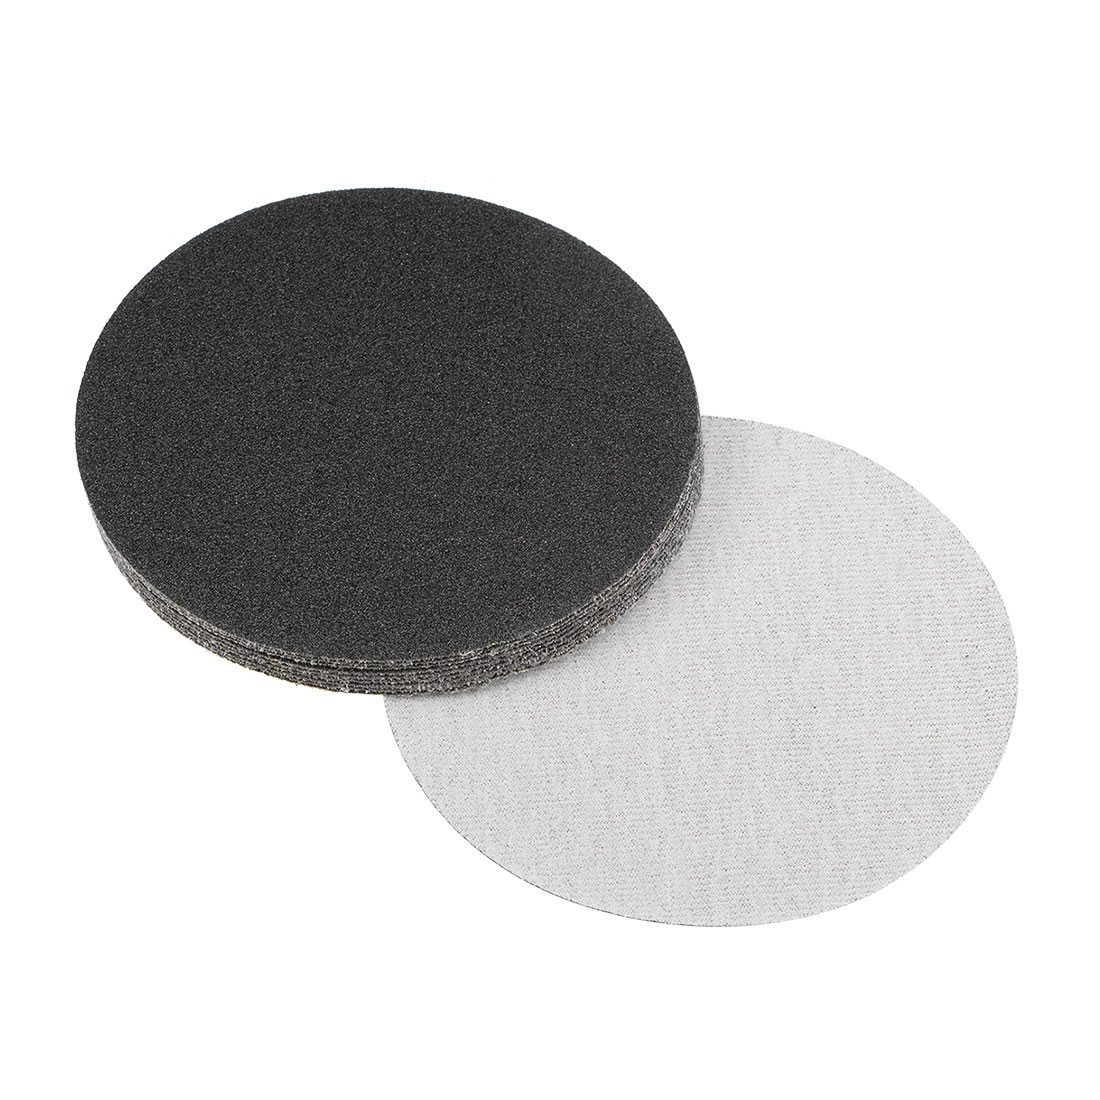 5 inch Wet Dry Discs 60 Grit Hook and Loop Sanding Disc Silicon Carbide 10pcs